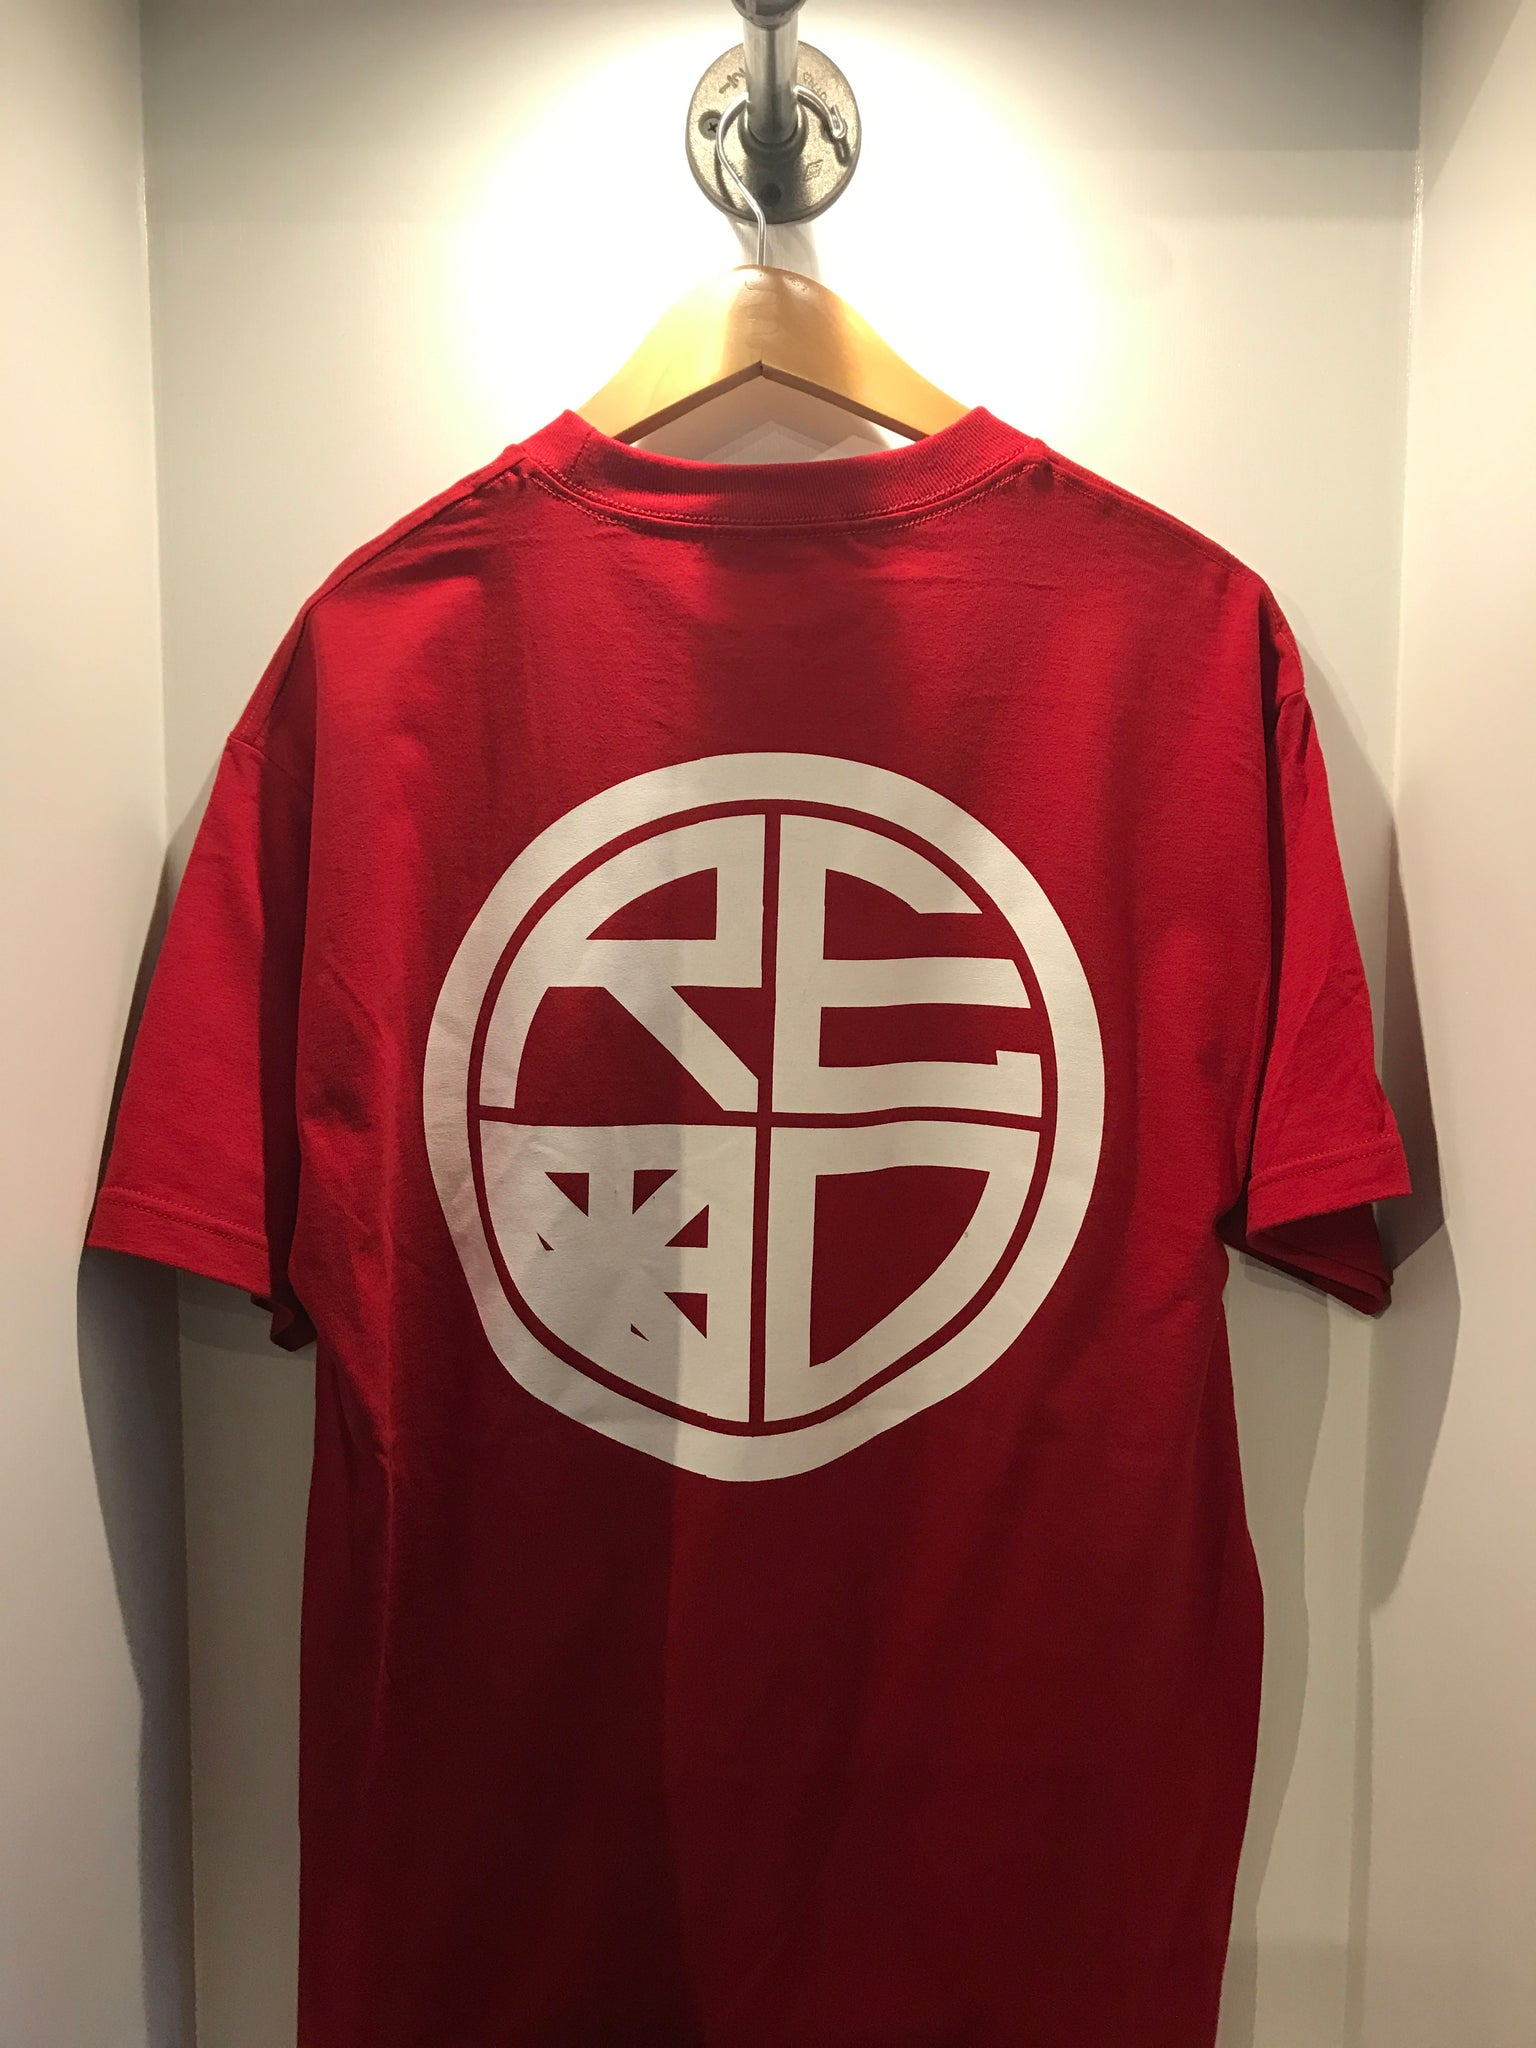 Classic Logo Mens Tee - Red & White - Red Label Clothing Inc